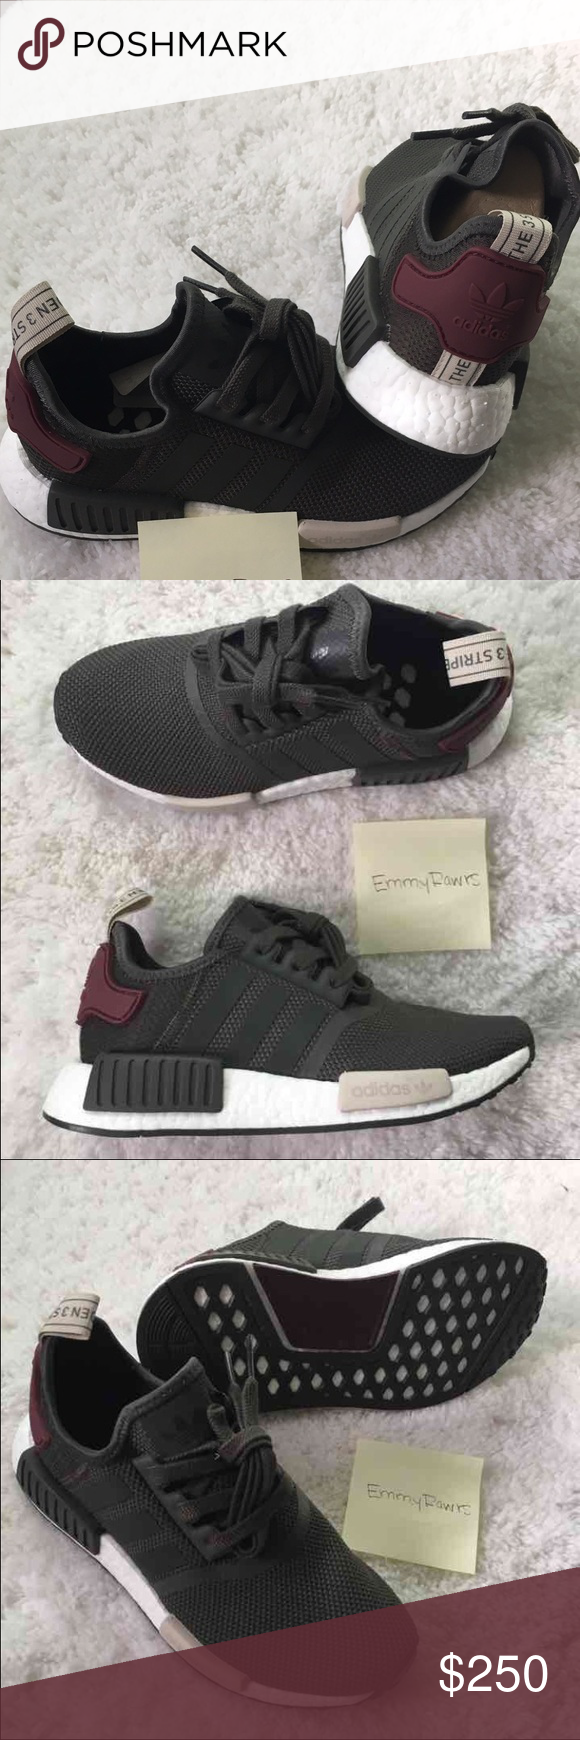 940144571b7f9  200 New Adidas NMD R1 ••  200 on either Vinted or P ••• New Women ...